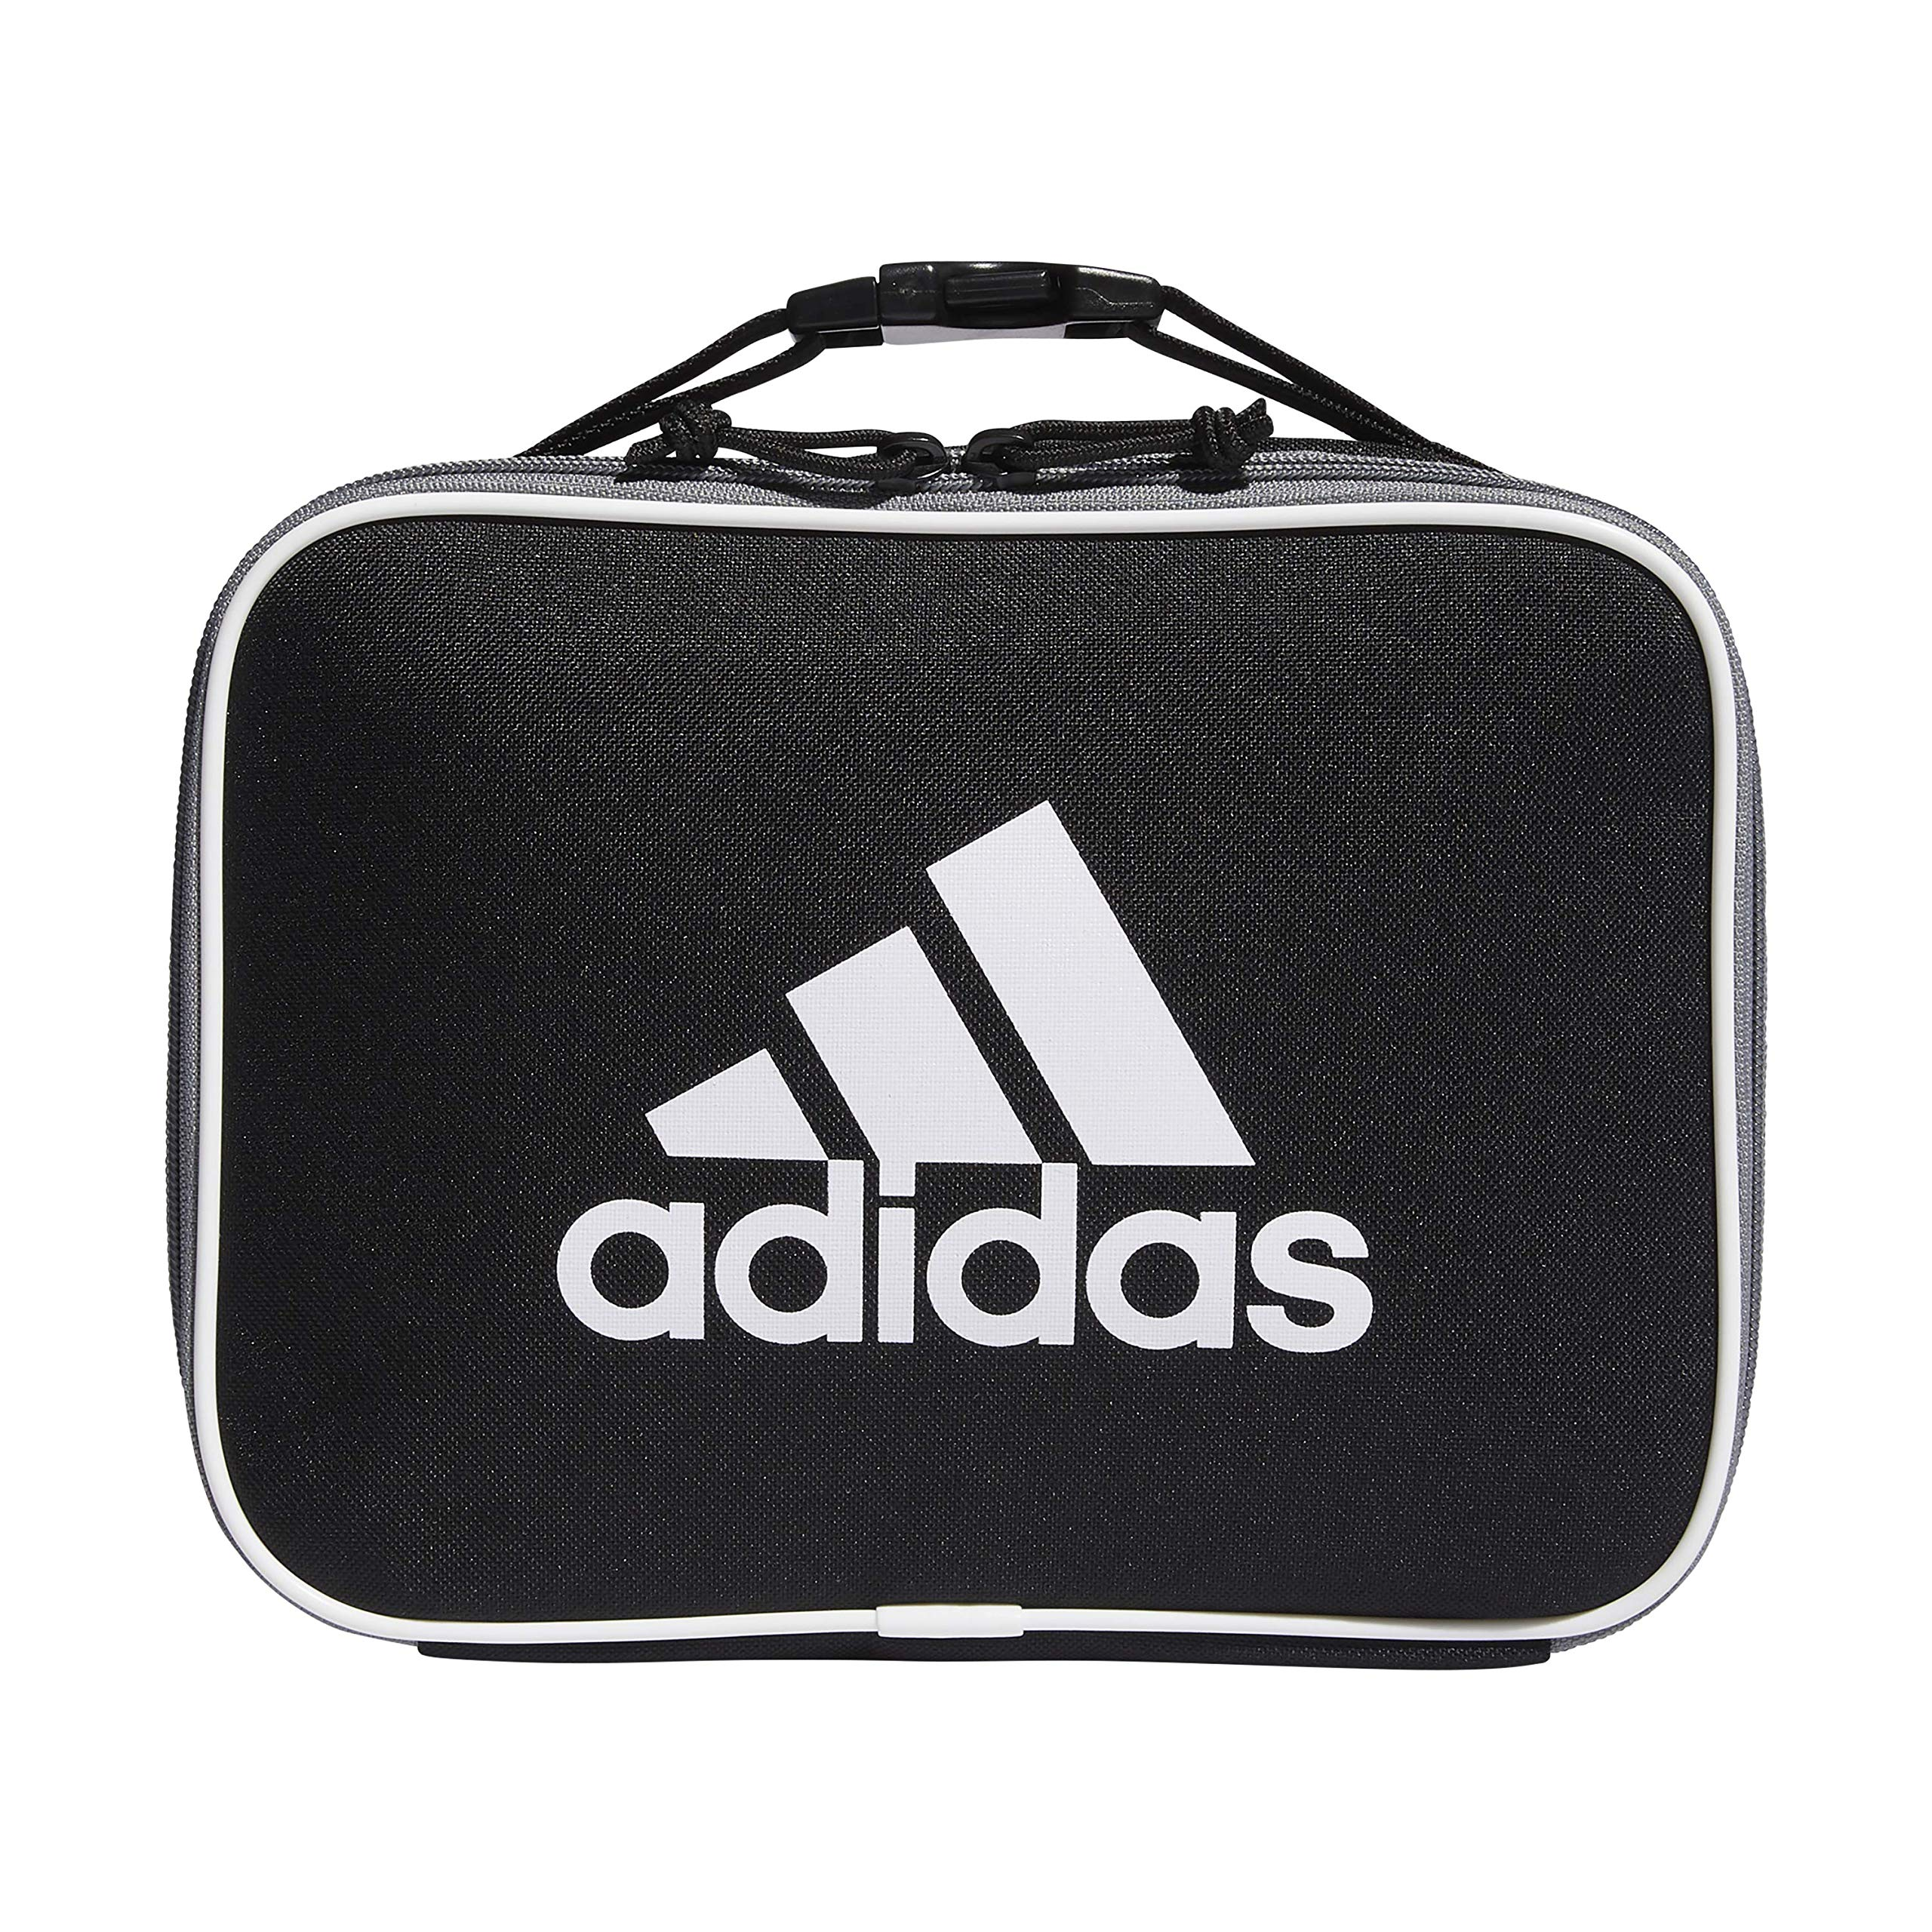 adidas Unisex Foundation Insulated Lunch Bag, Black/White, ONE SIZE by adidas